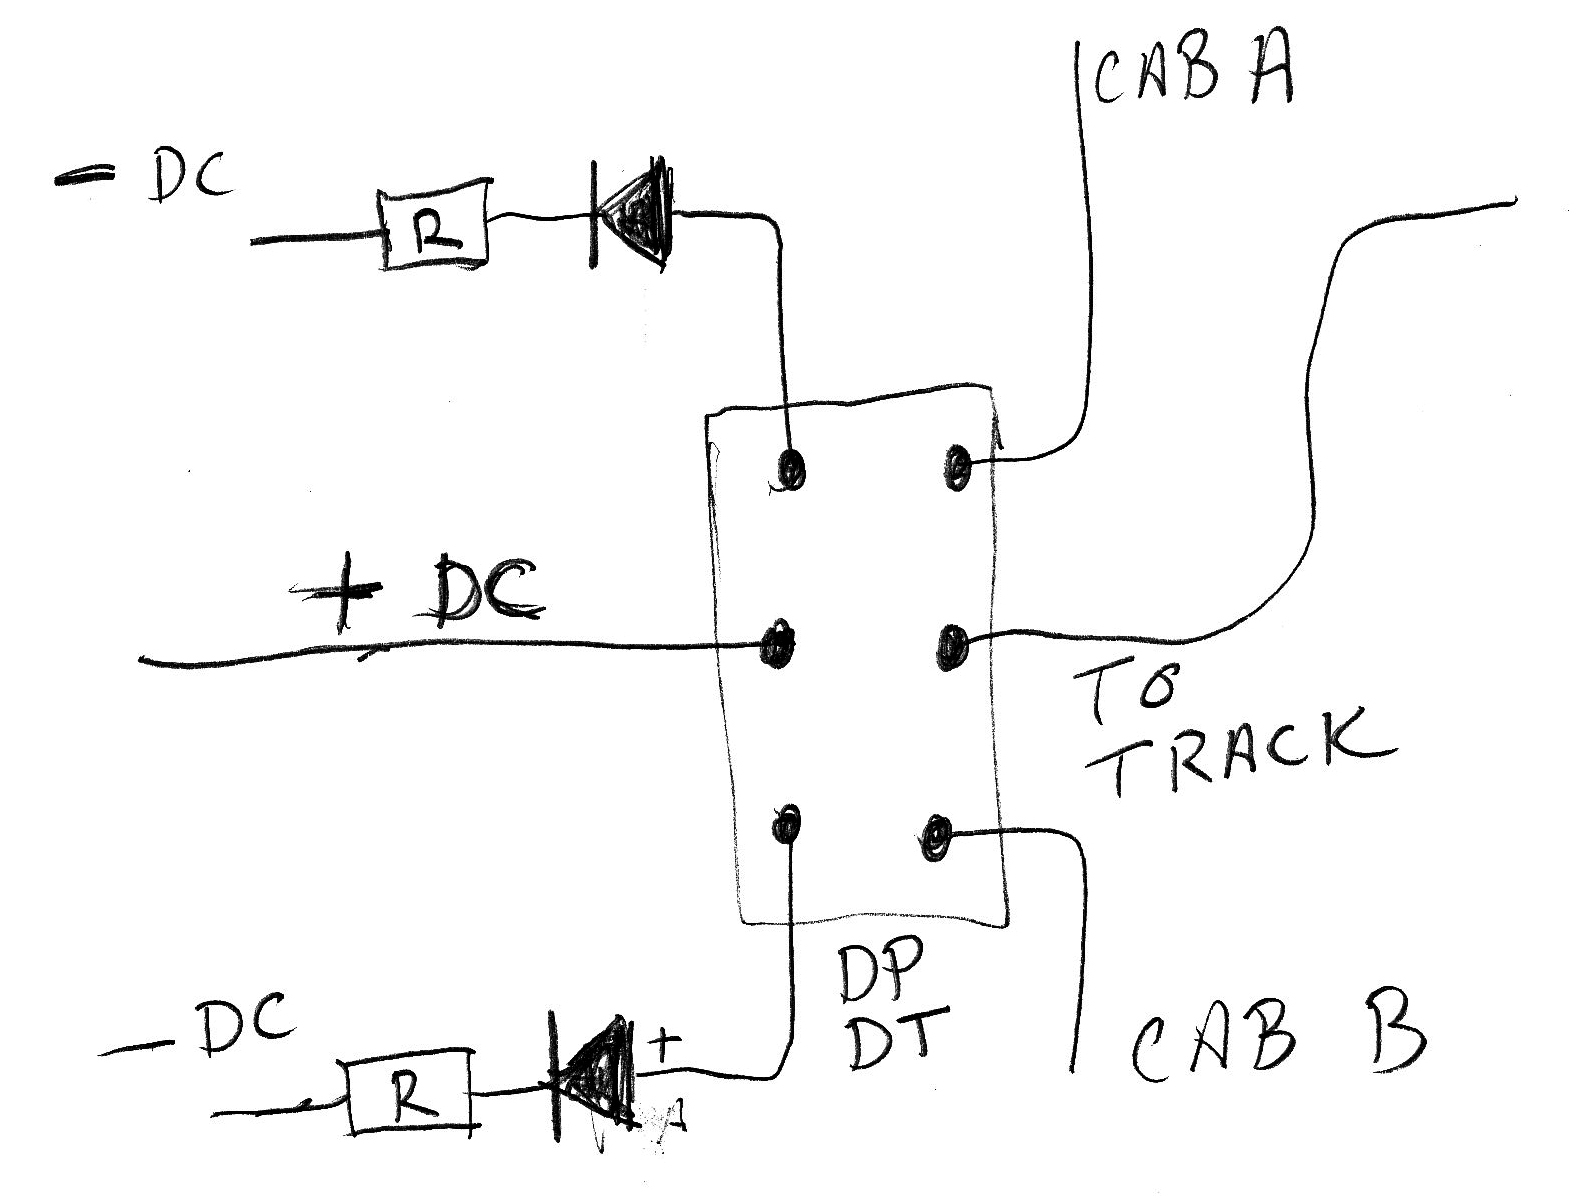 question about led spst switch u2019s - model railroader magazine